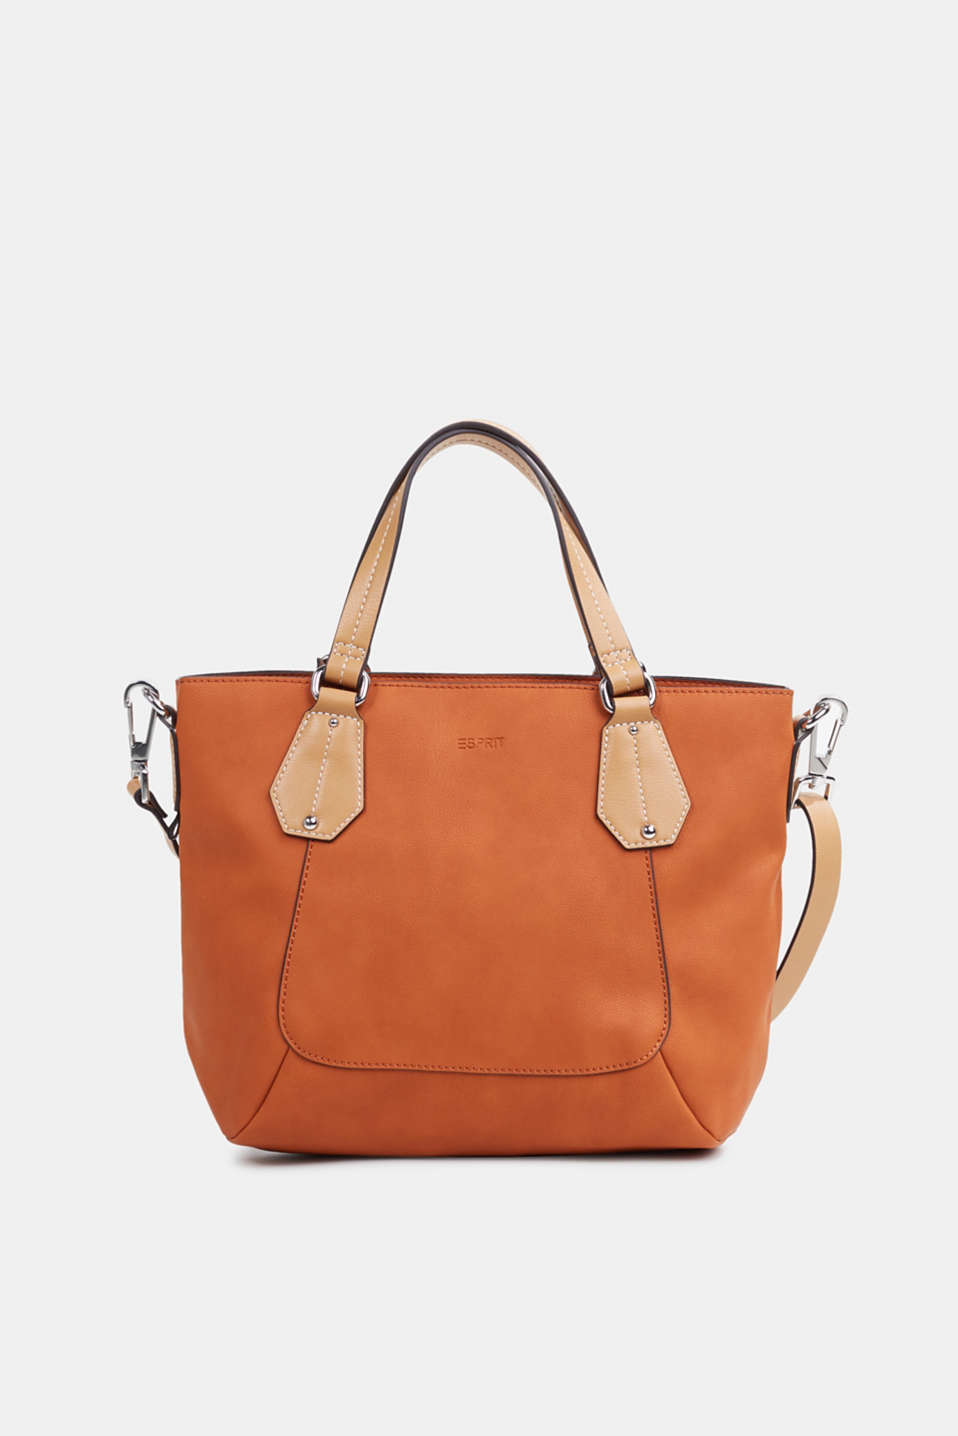 Esprit - City bag in leerlook, veganistisch